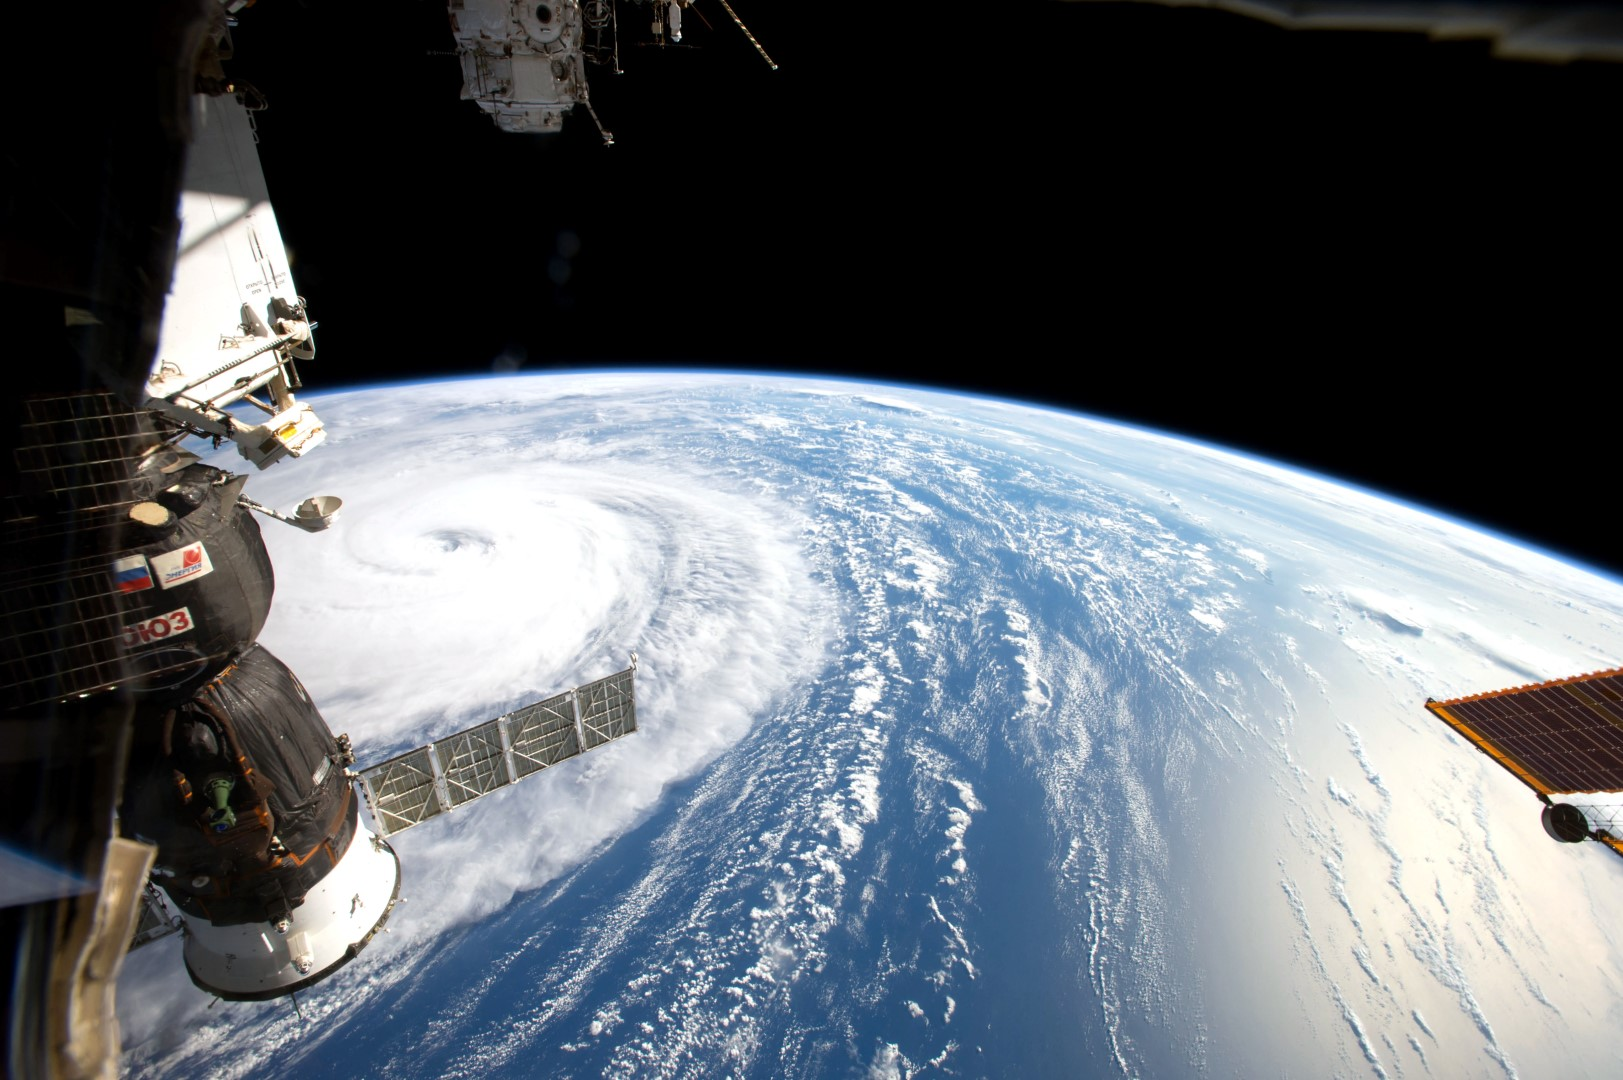 World Is the ISS? Three Ways To Locate Humanity's Only Space Outpost